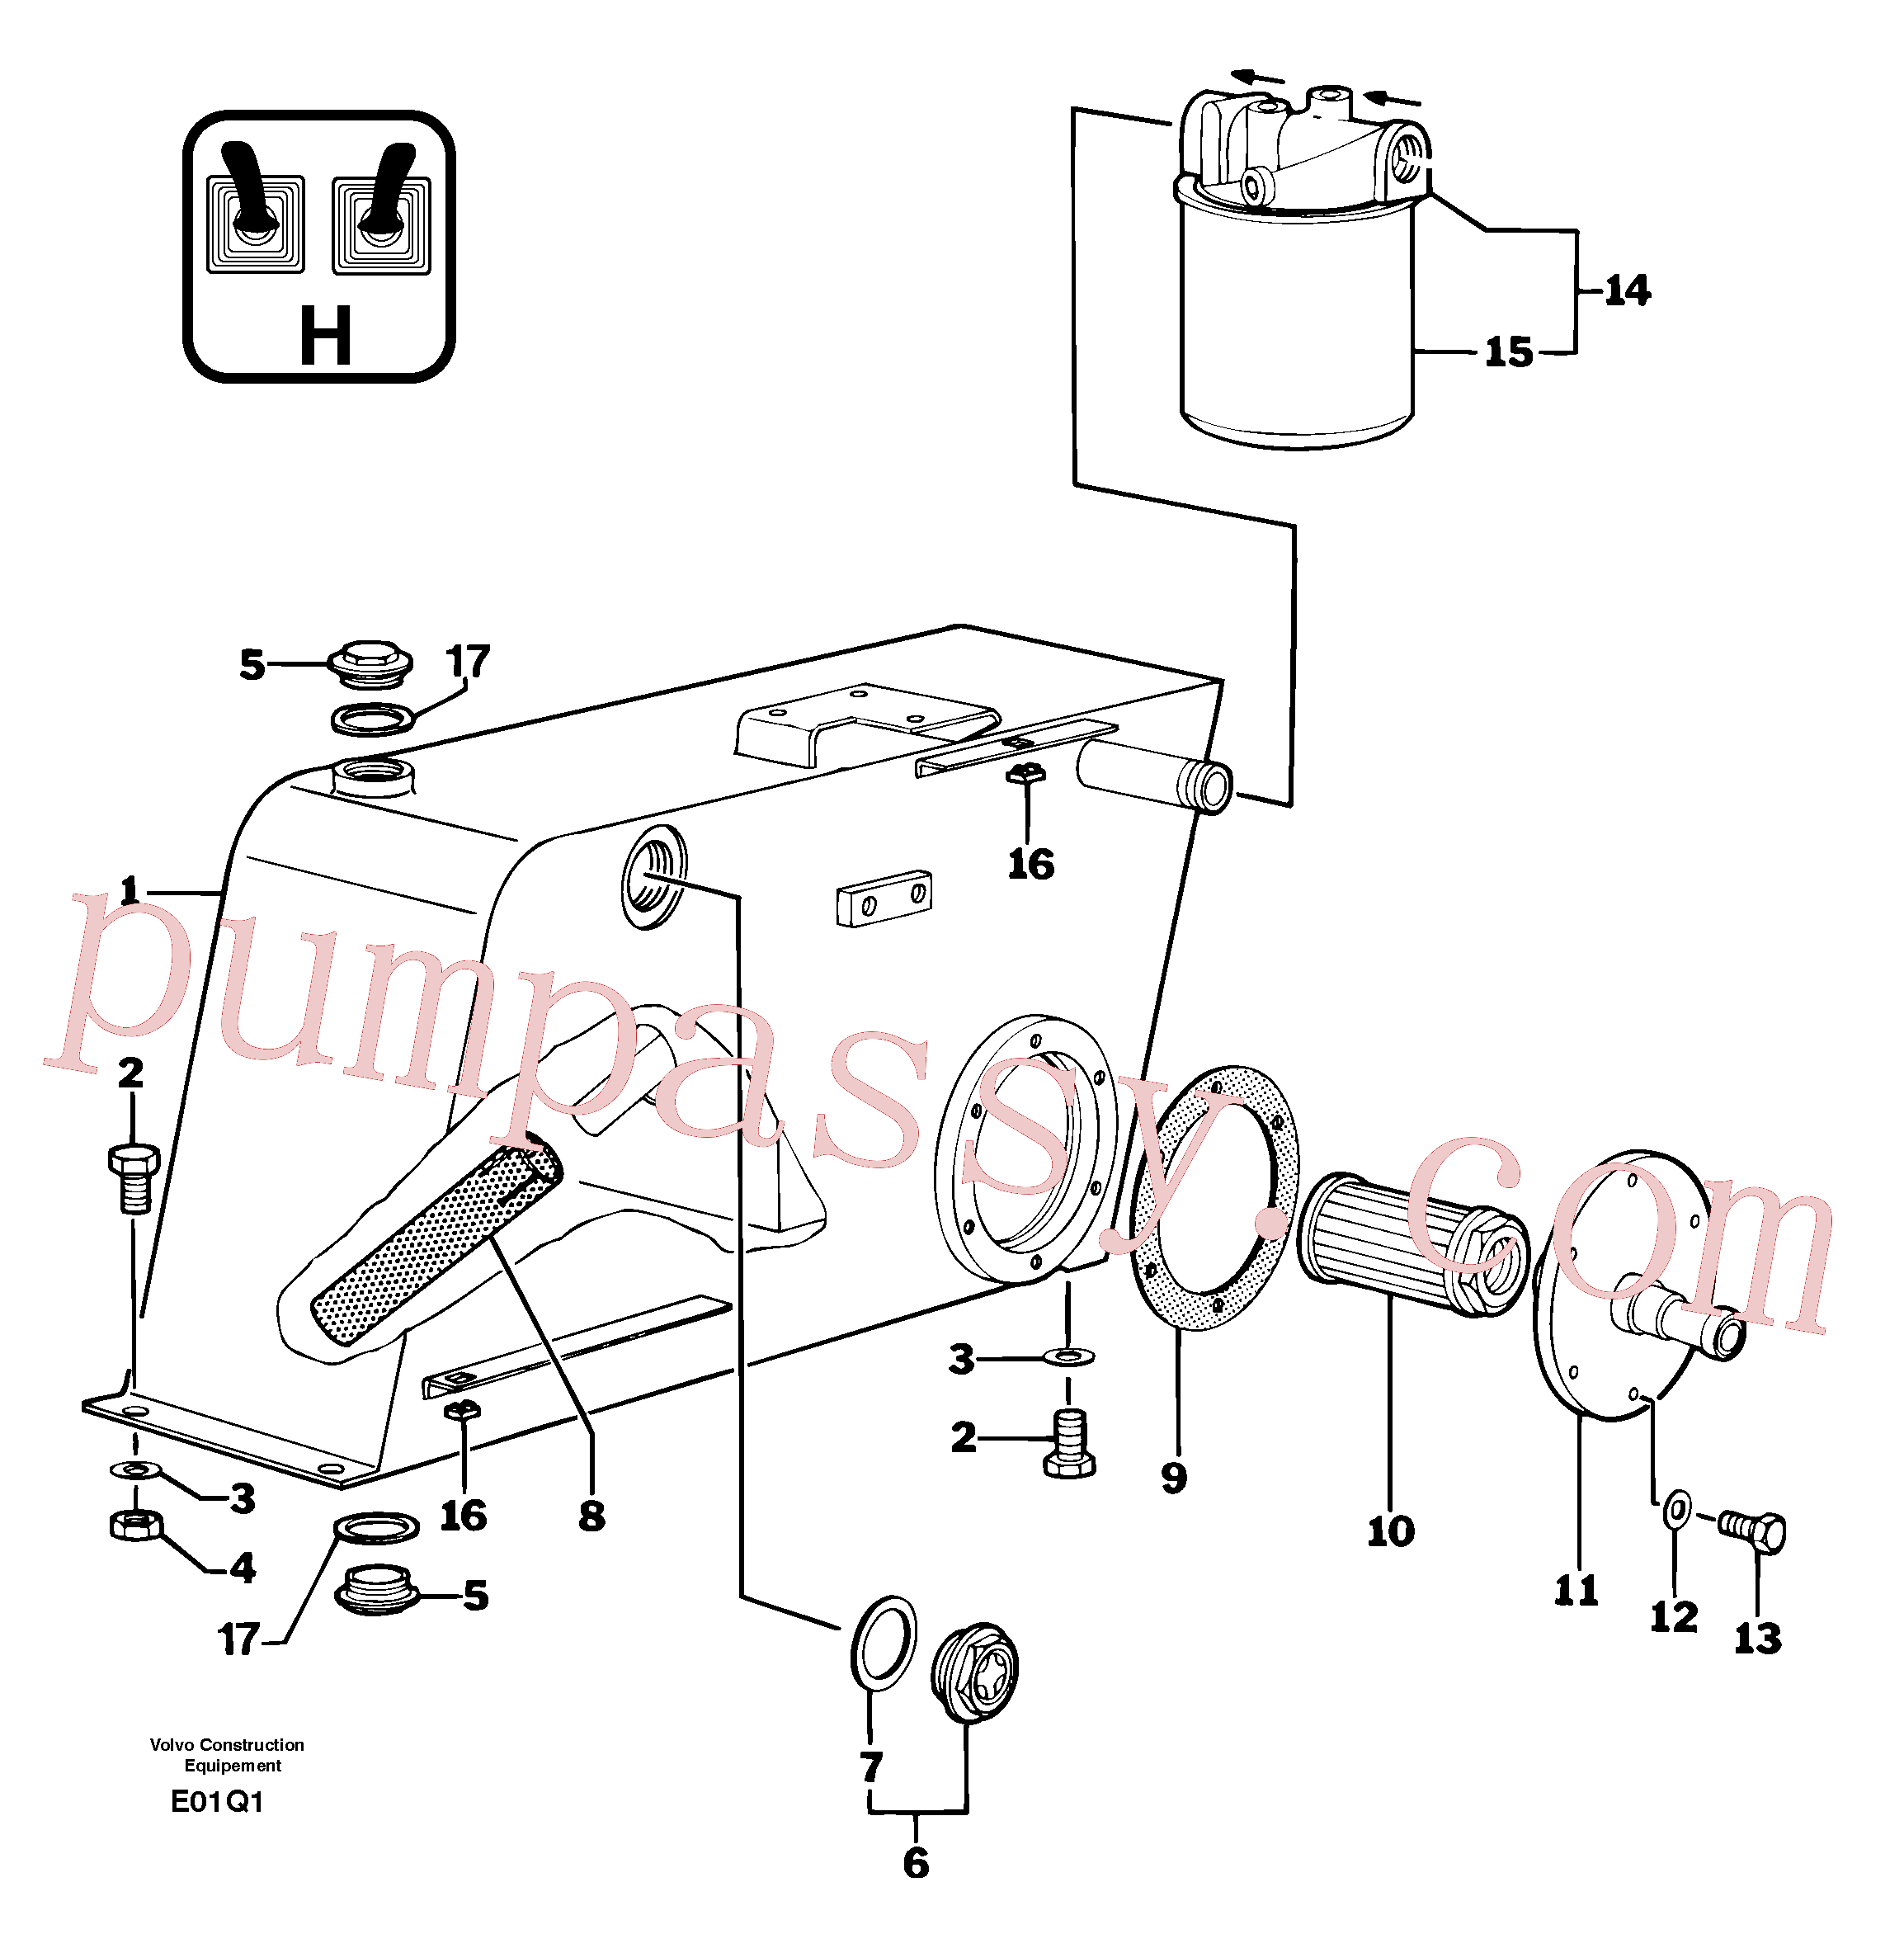 PJ4380037 for Volvo Hydraulic tank(E01HQ1 assembly)